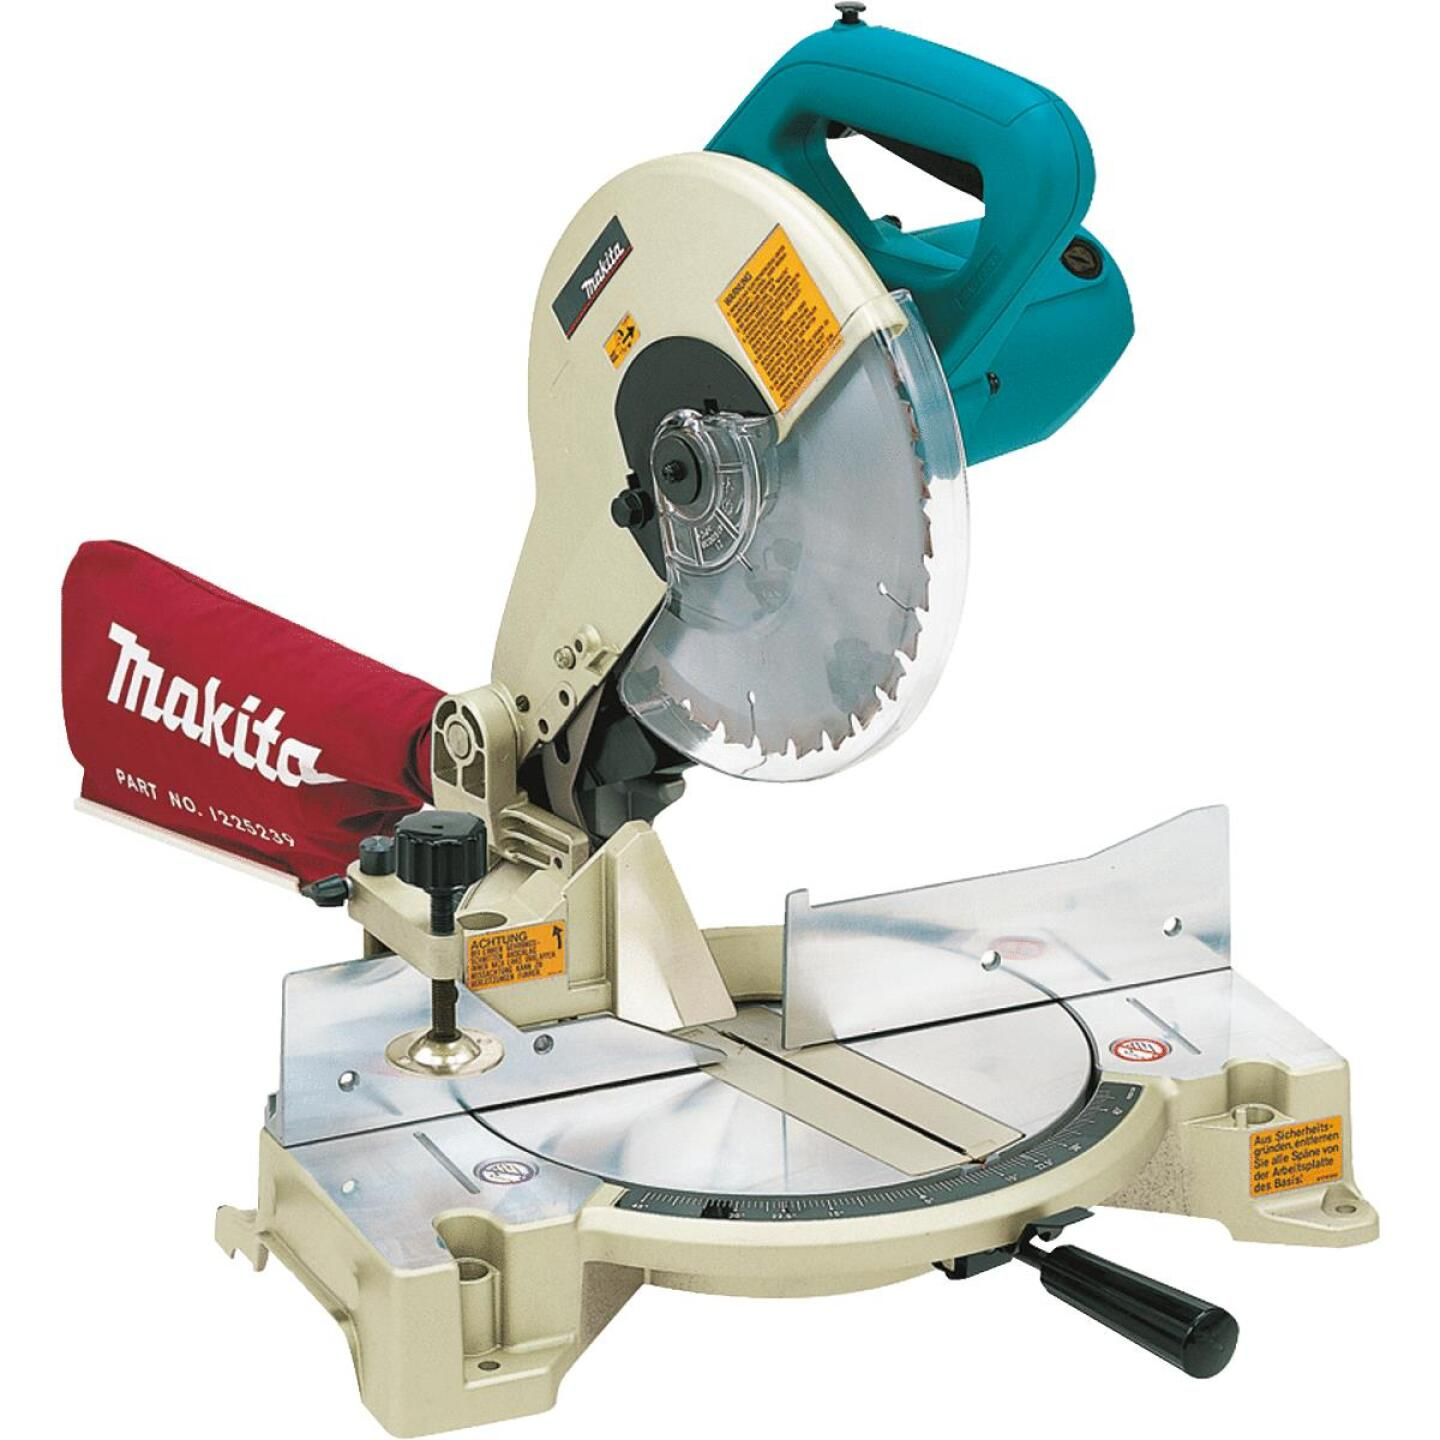 Makita 10 In. 15-Amp Compound Miter Saw Image 1